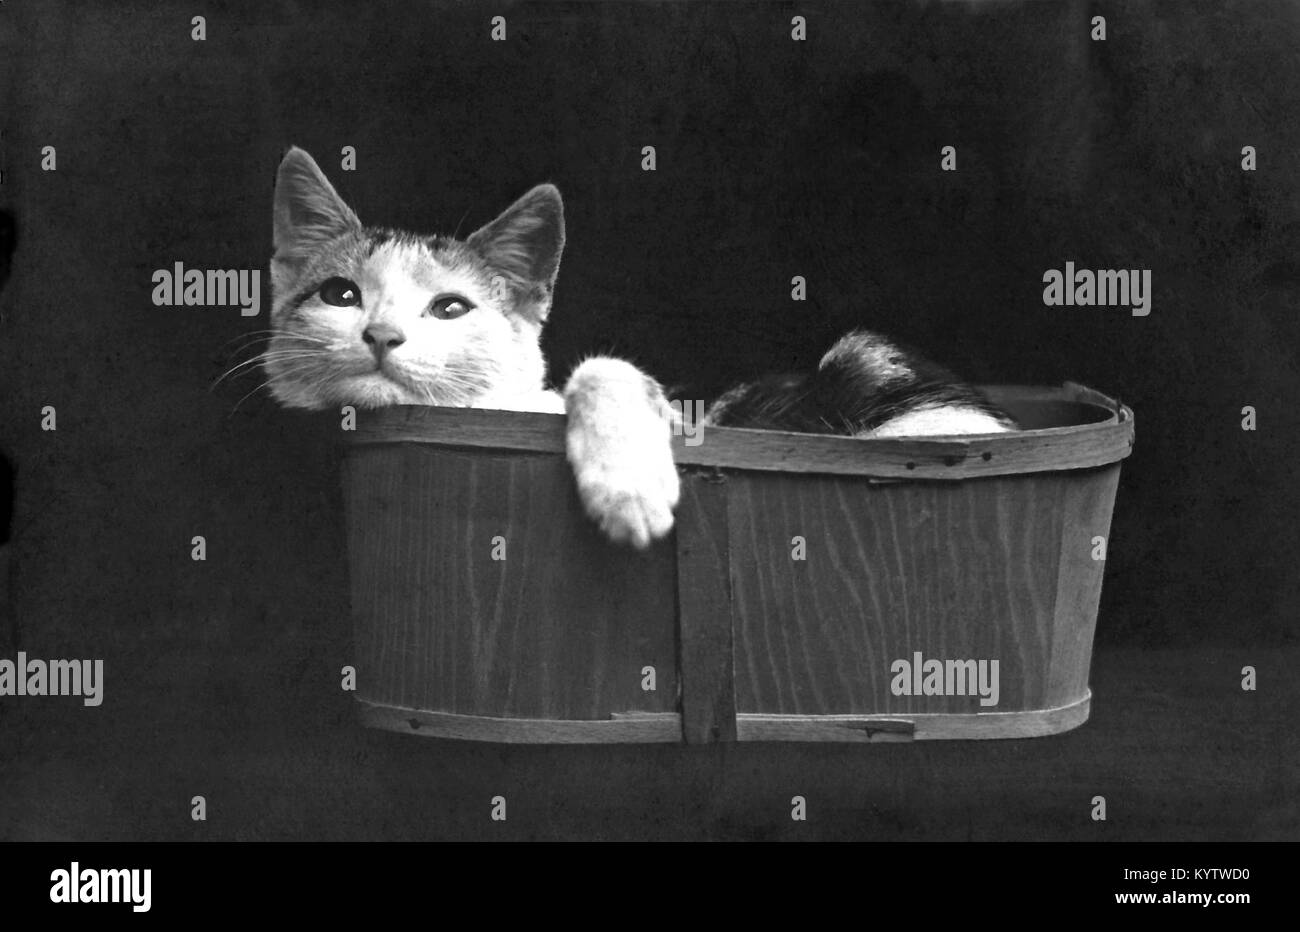 1906 photographic postcard of a kitten trying to fit into a basket. - Stock Image